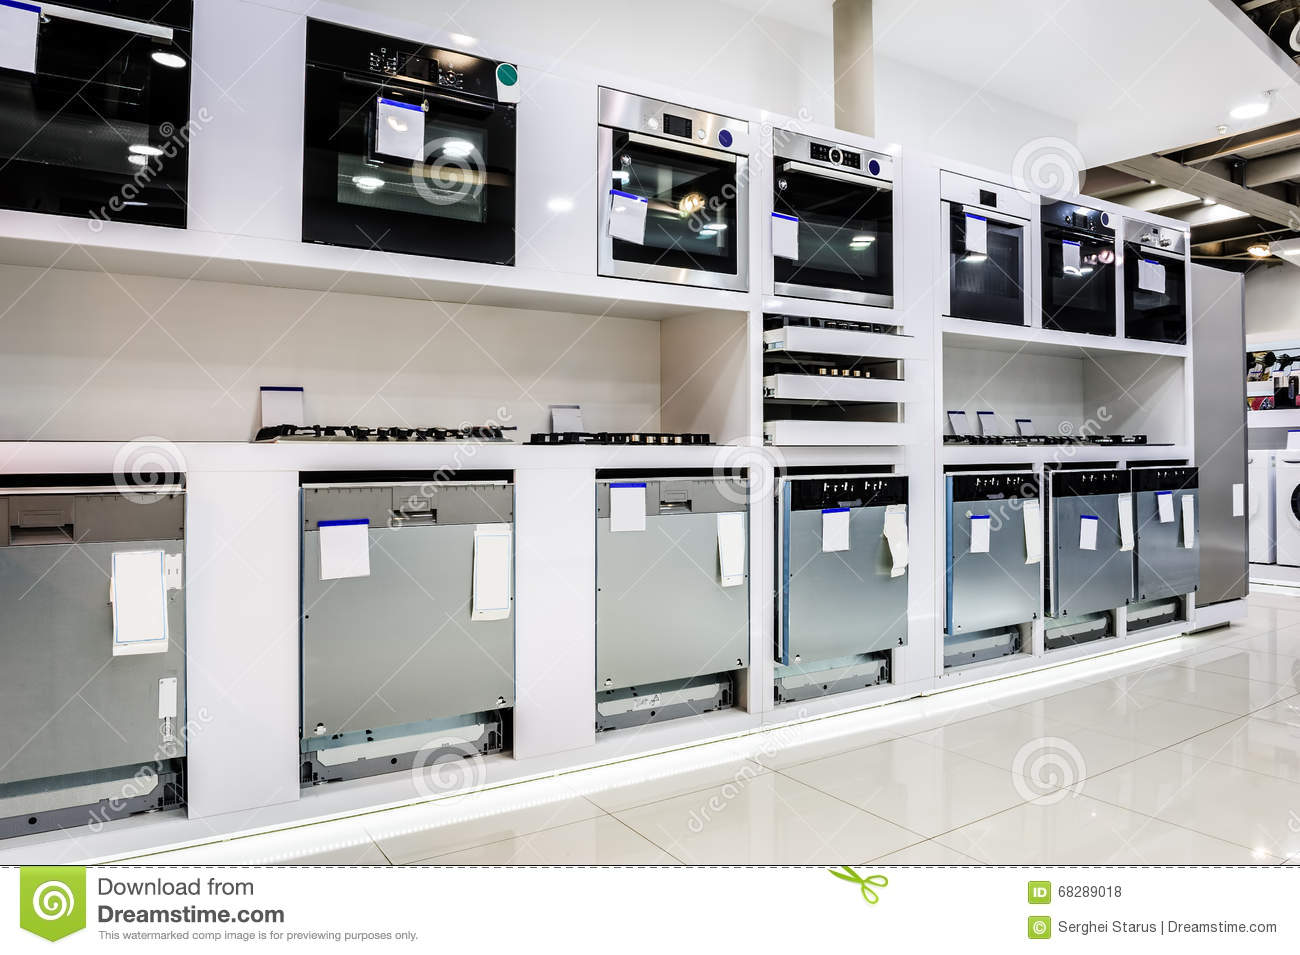 Home Appliance In The Store Stock Photo Image Of Machine